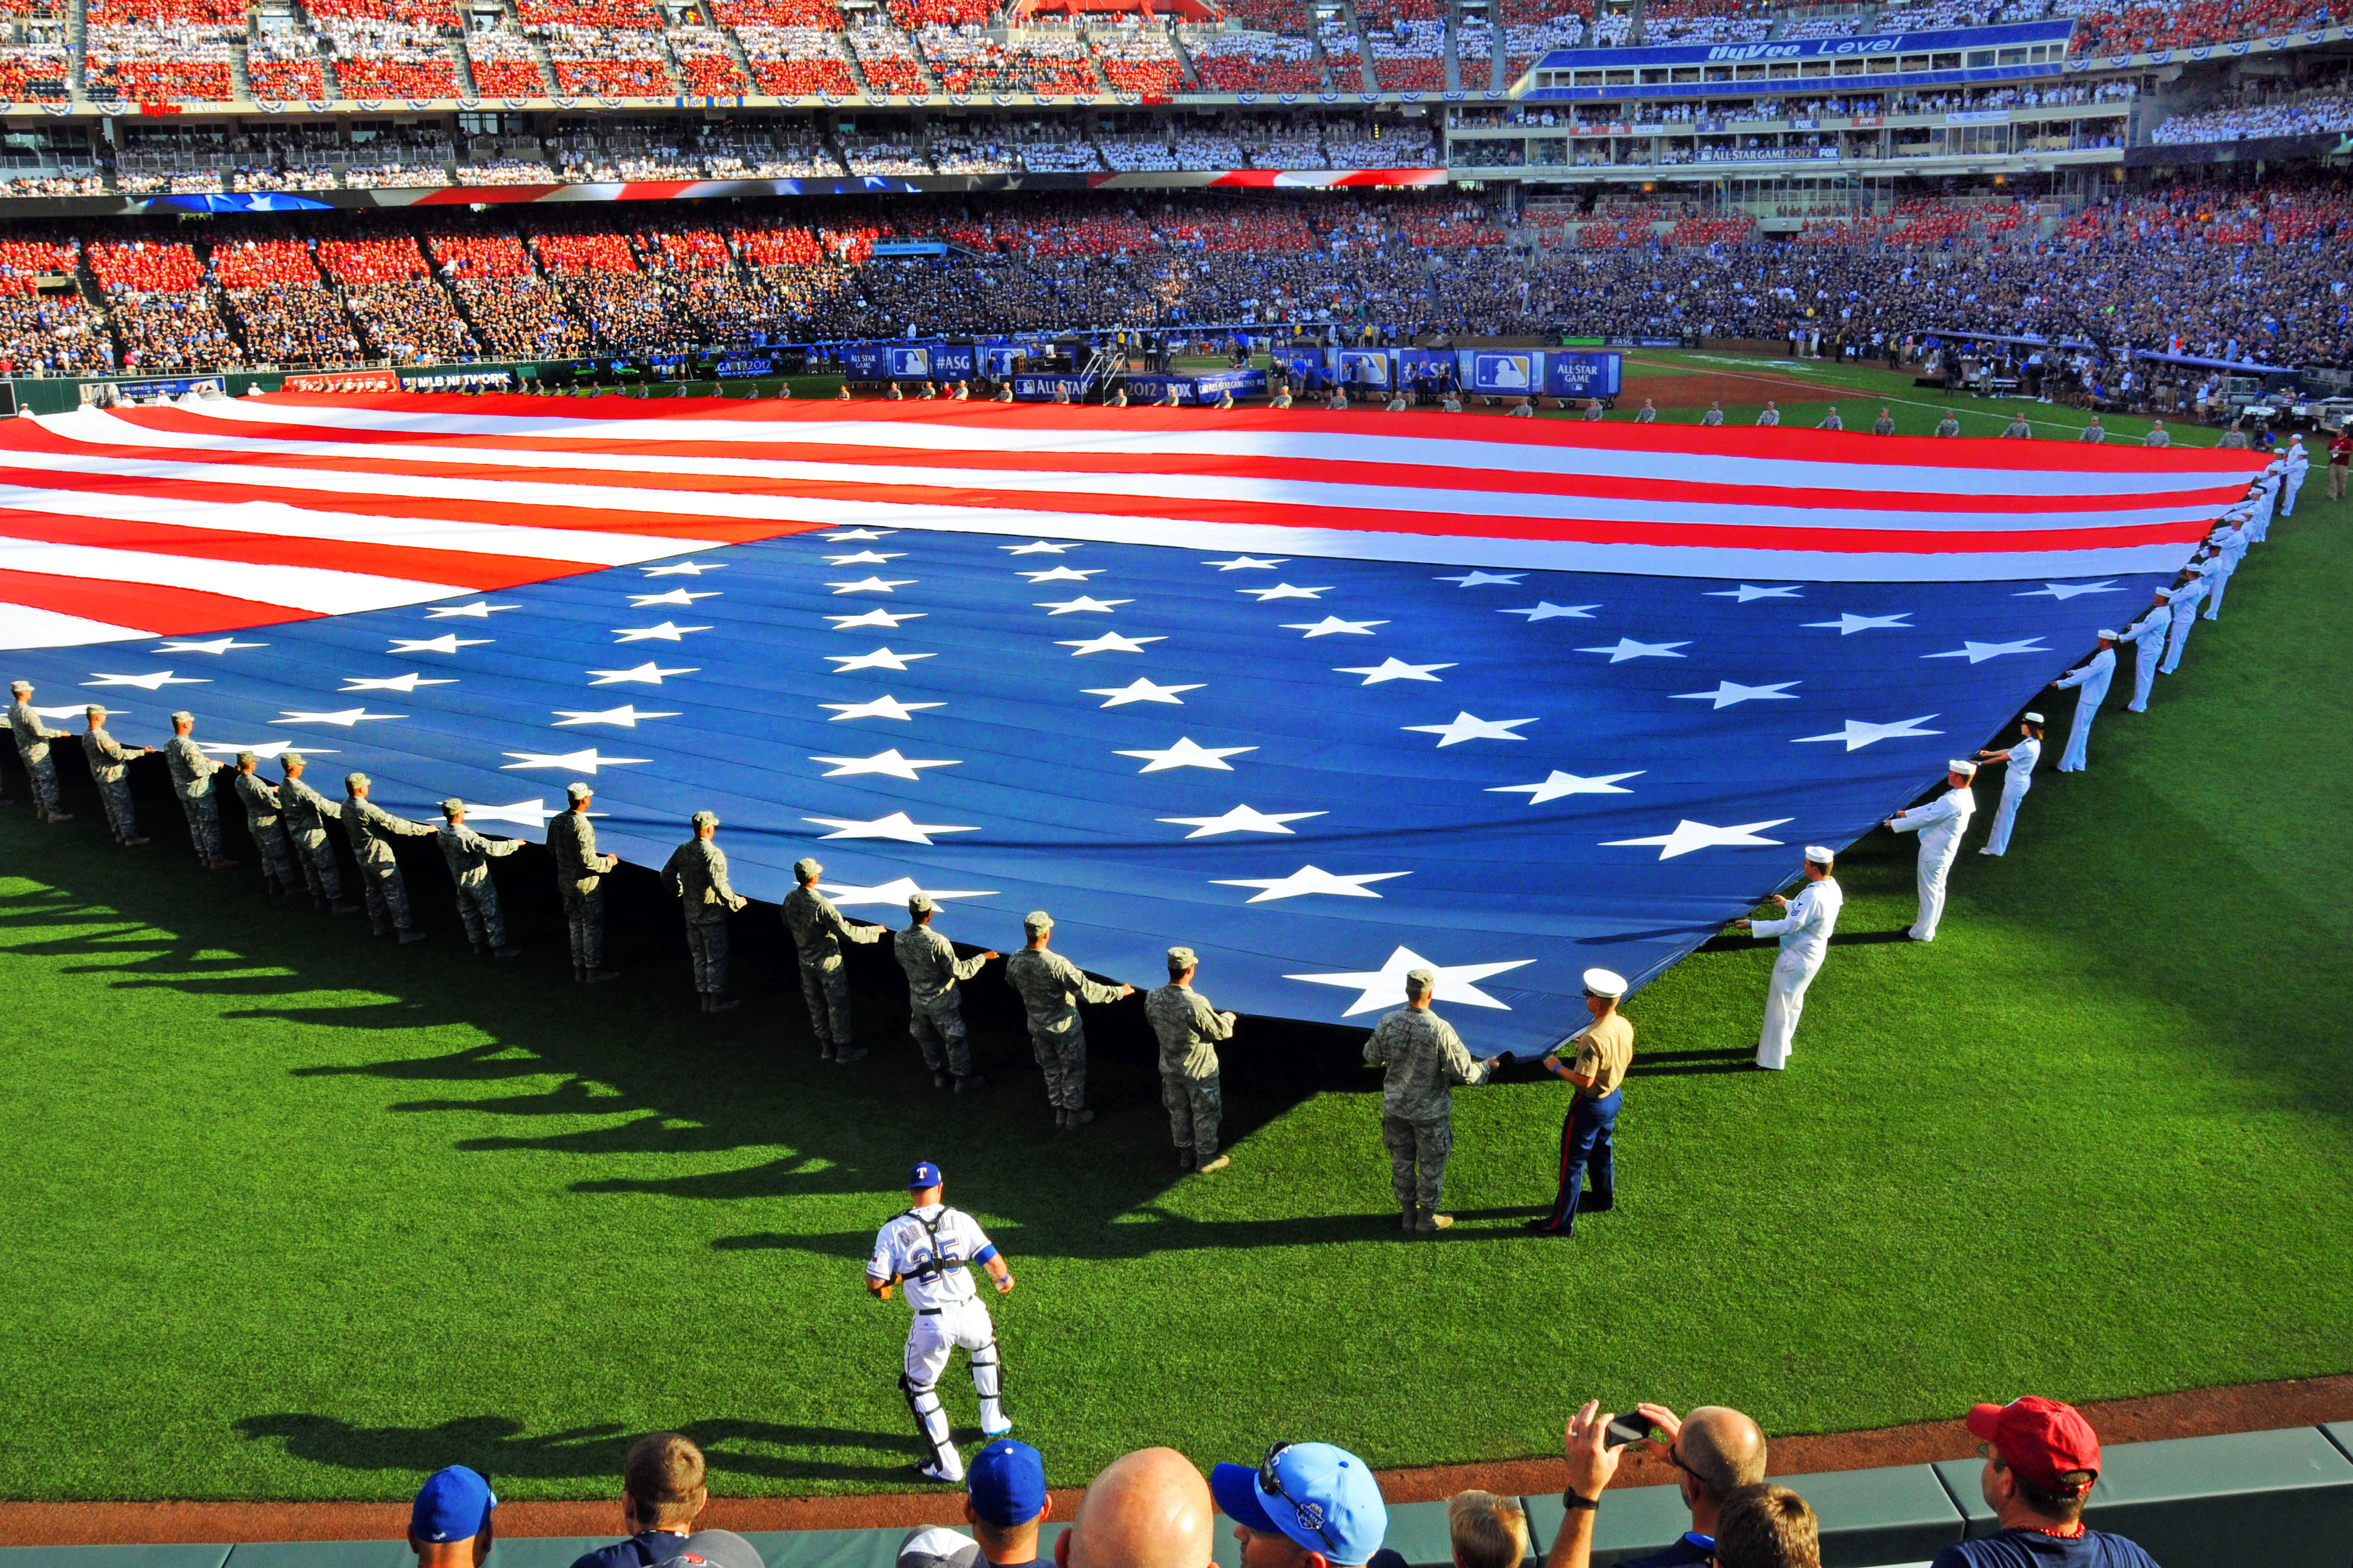 Sailors And Airmen Present A Giant American Flag Before The 2012 Major  League Baseball All